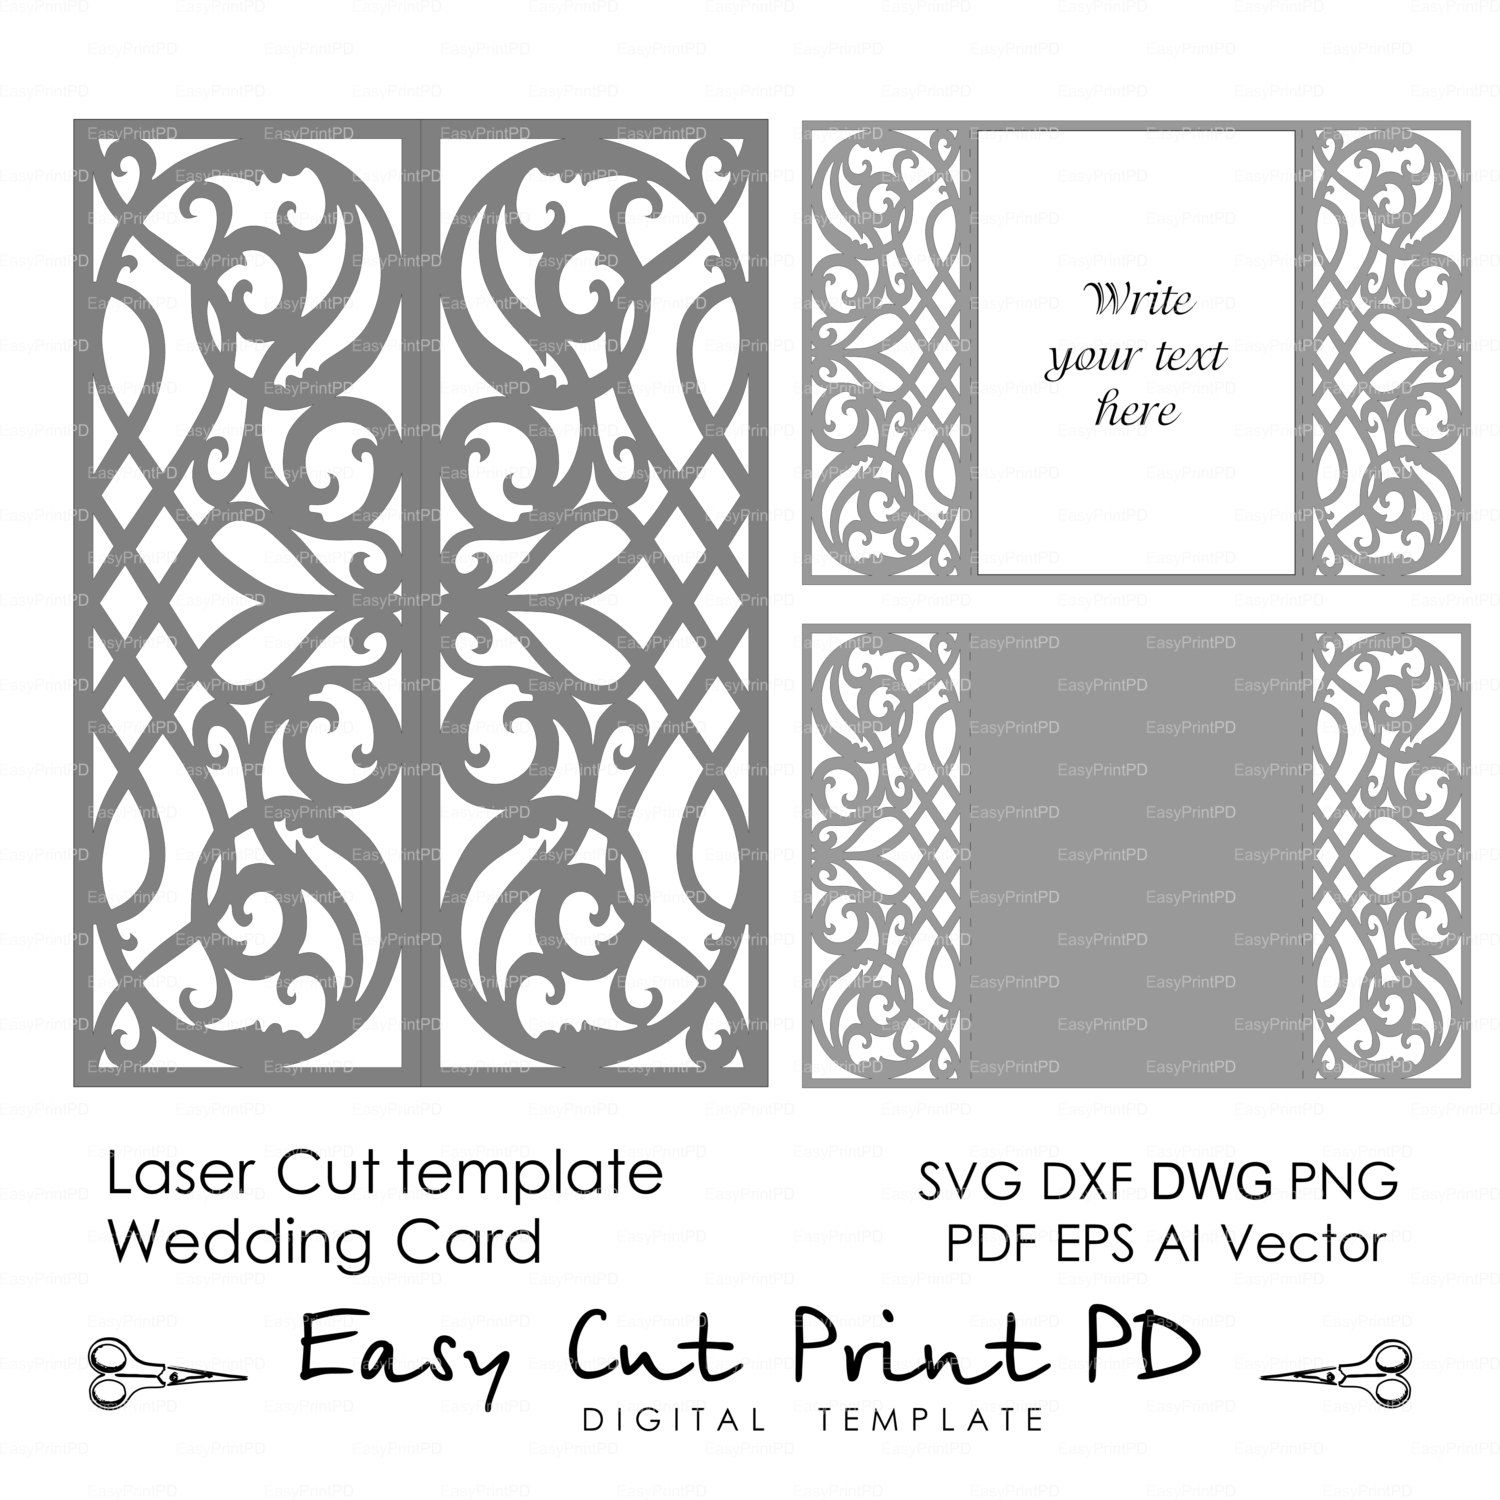 Card Template Swirls stencil Scroll door gate folds Wedding